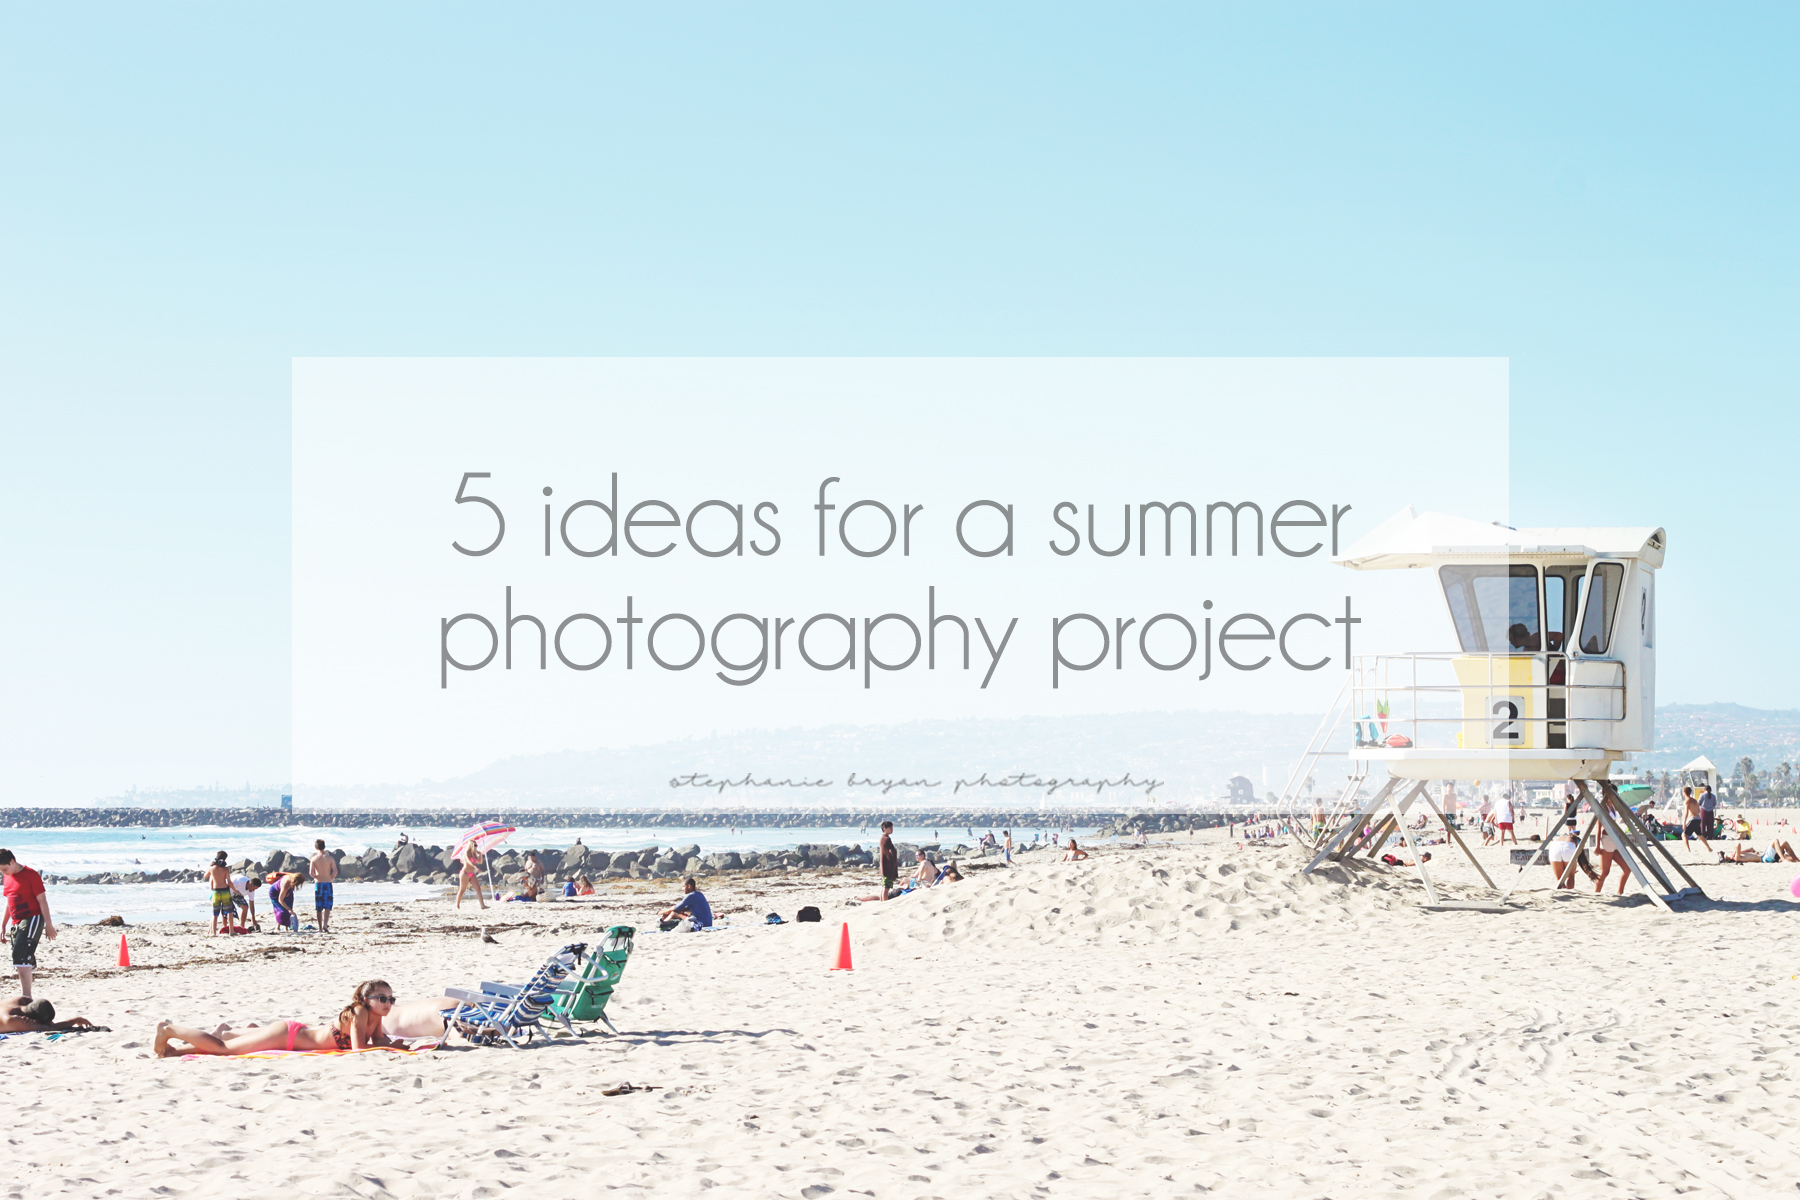 Stephanie Bryan Photography - 5 ideas for a summer photography project